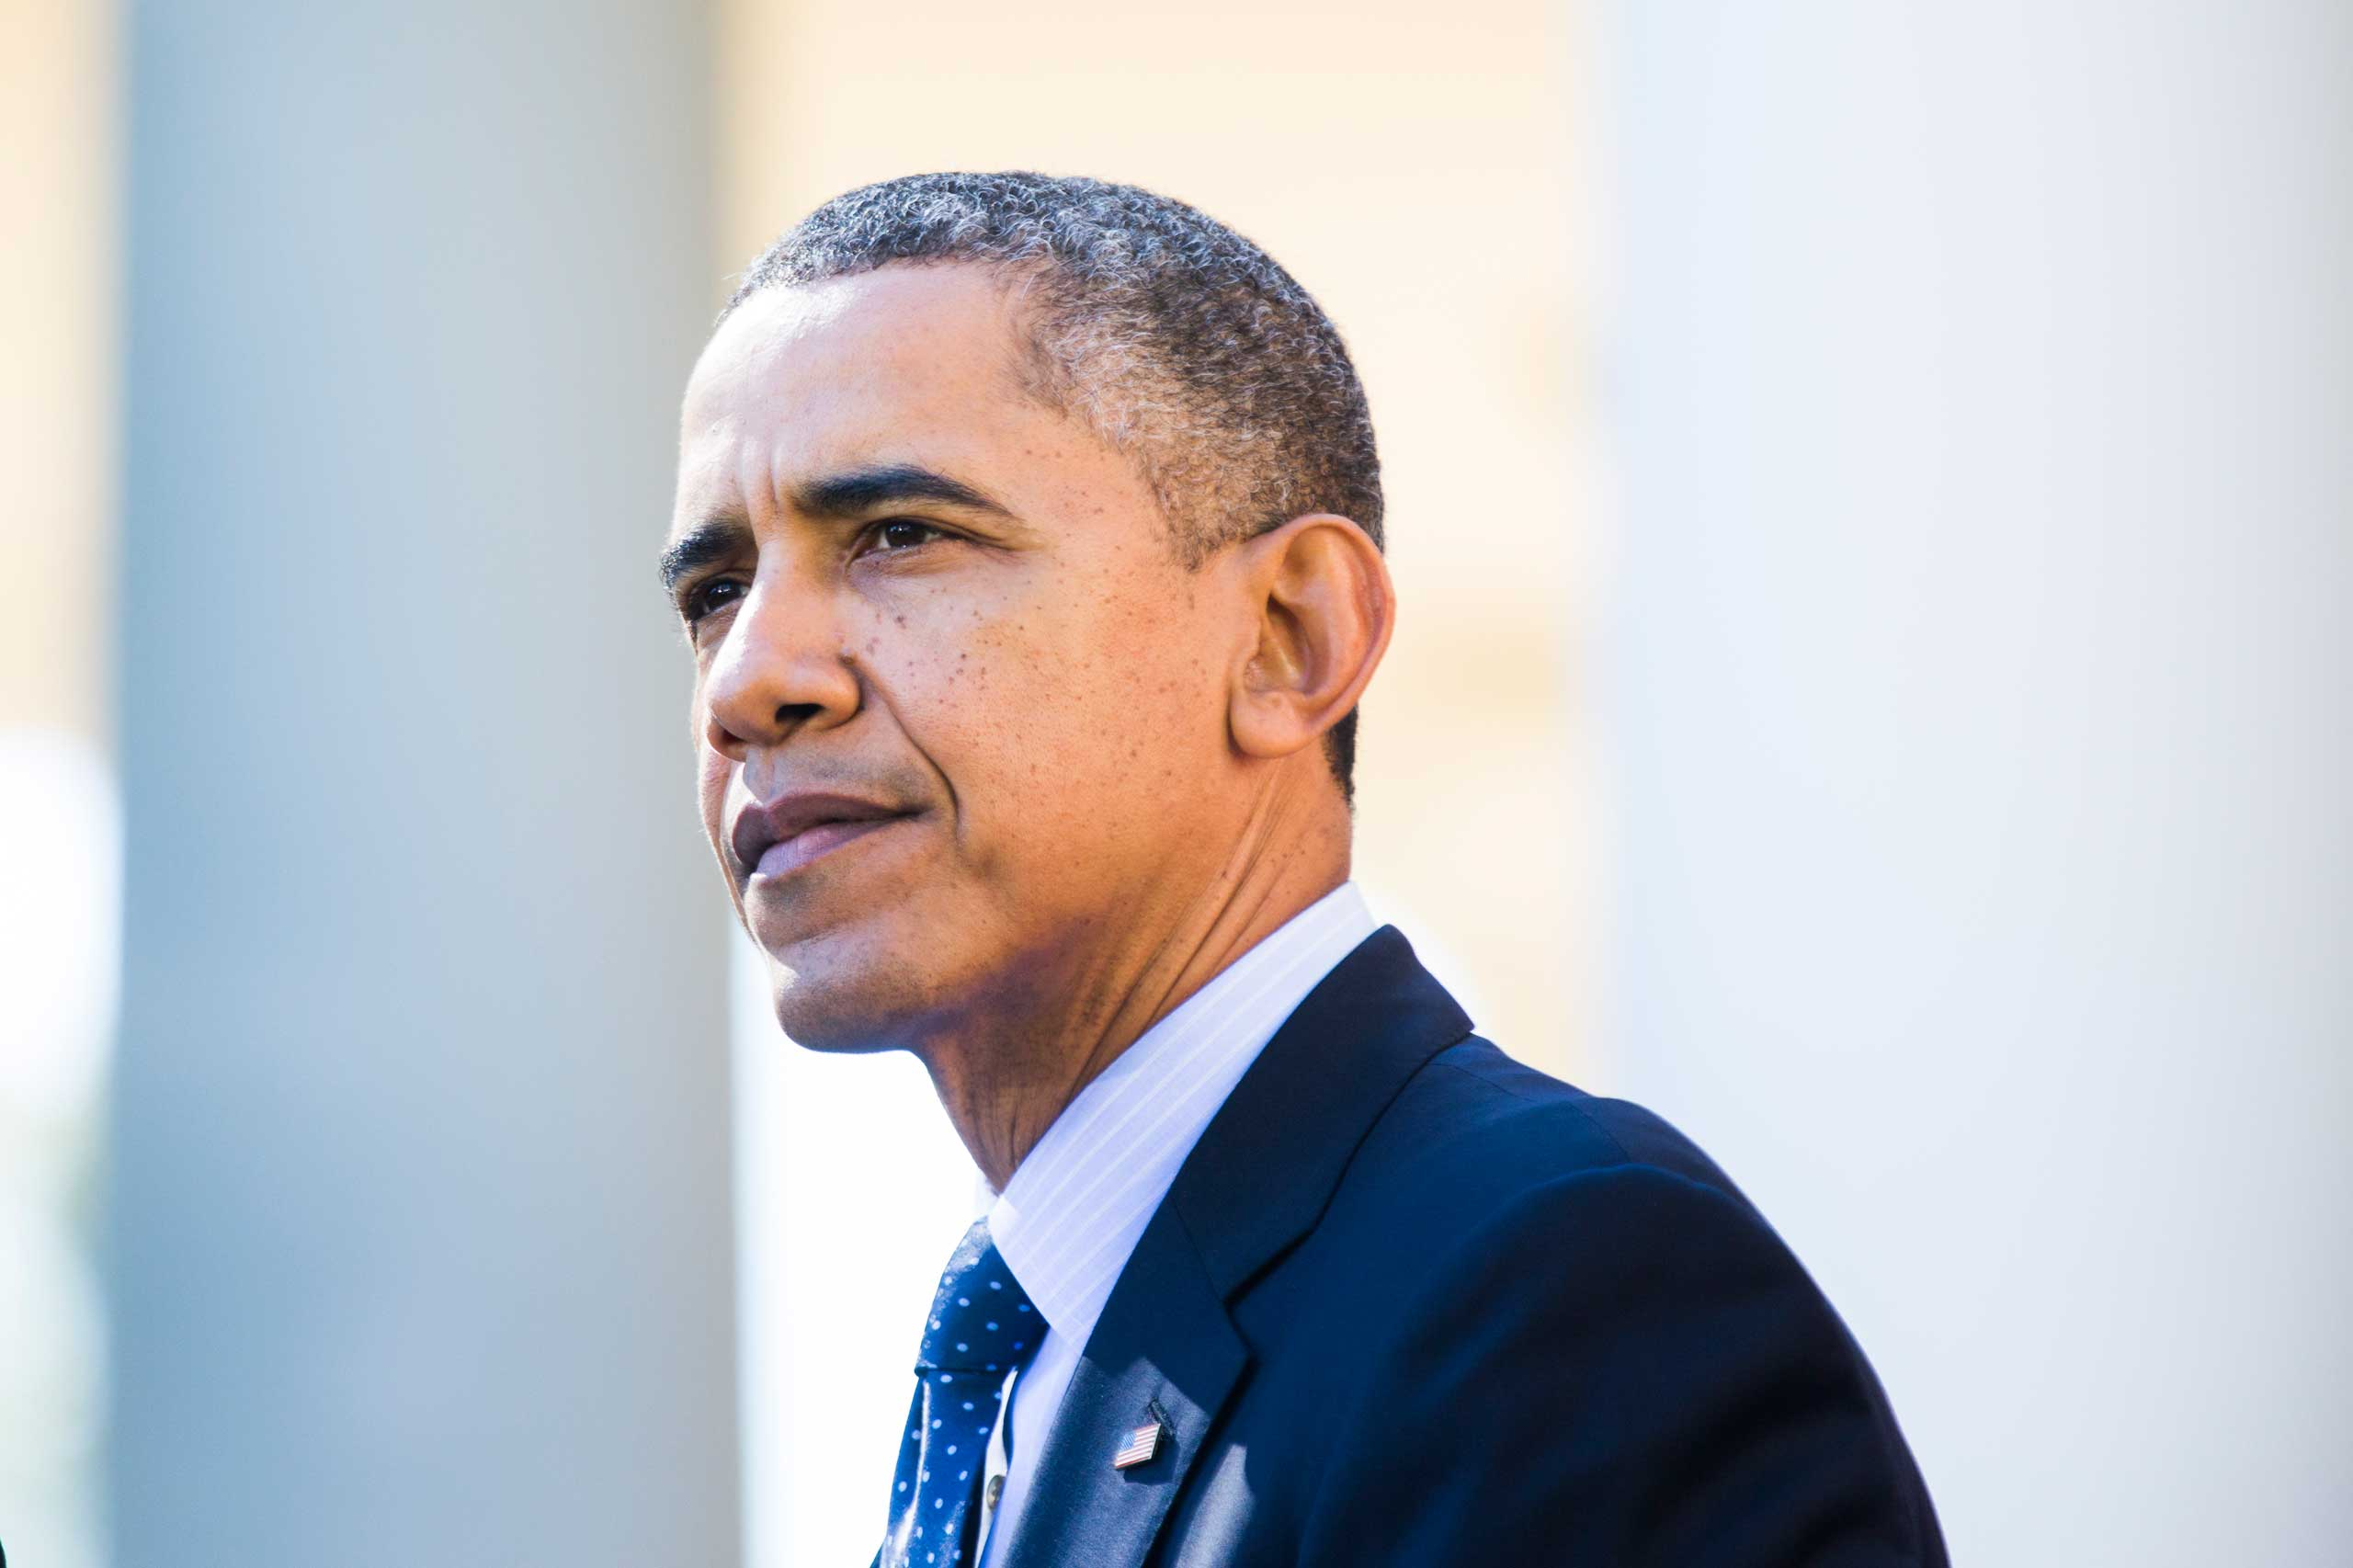 """<b>Barack Obama, 2009</b>                                   """"For his extraordinary efforts to strengthen international diplomacy and cooperation between peoples"""""""